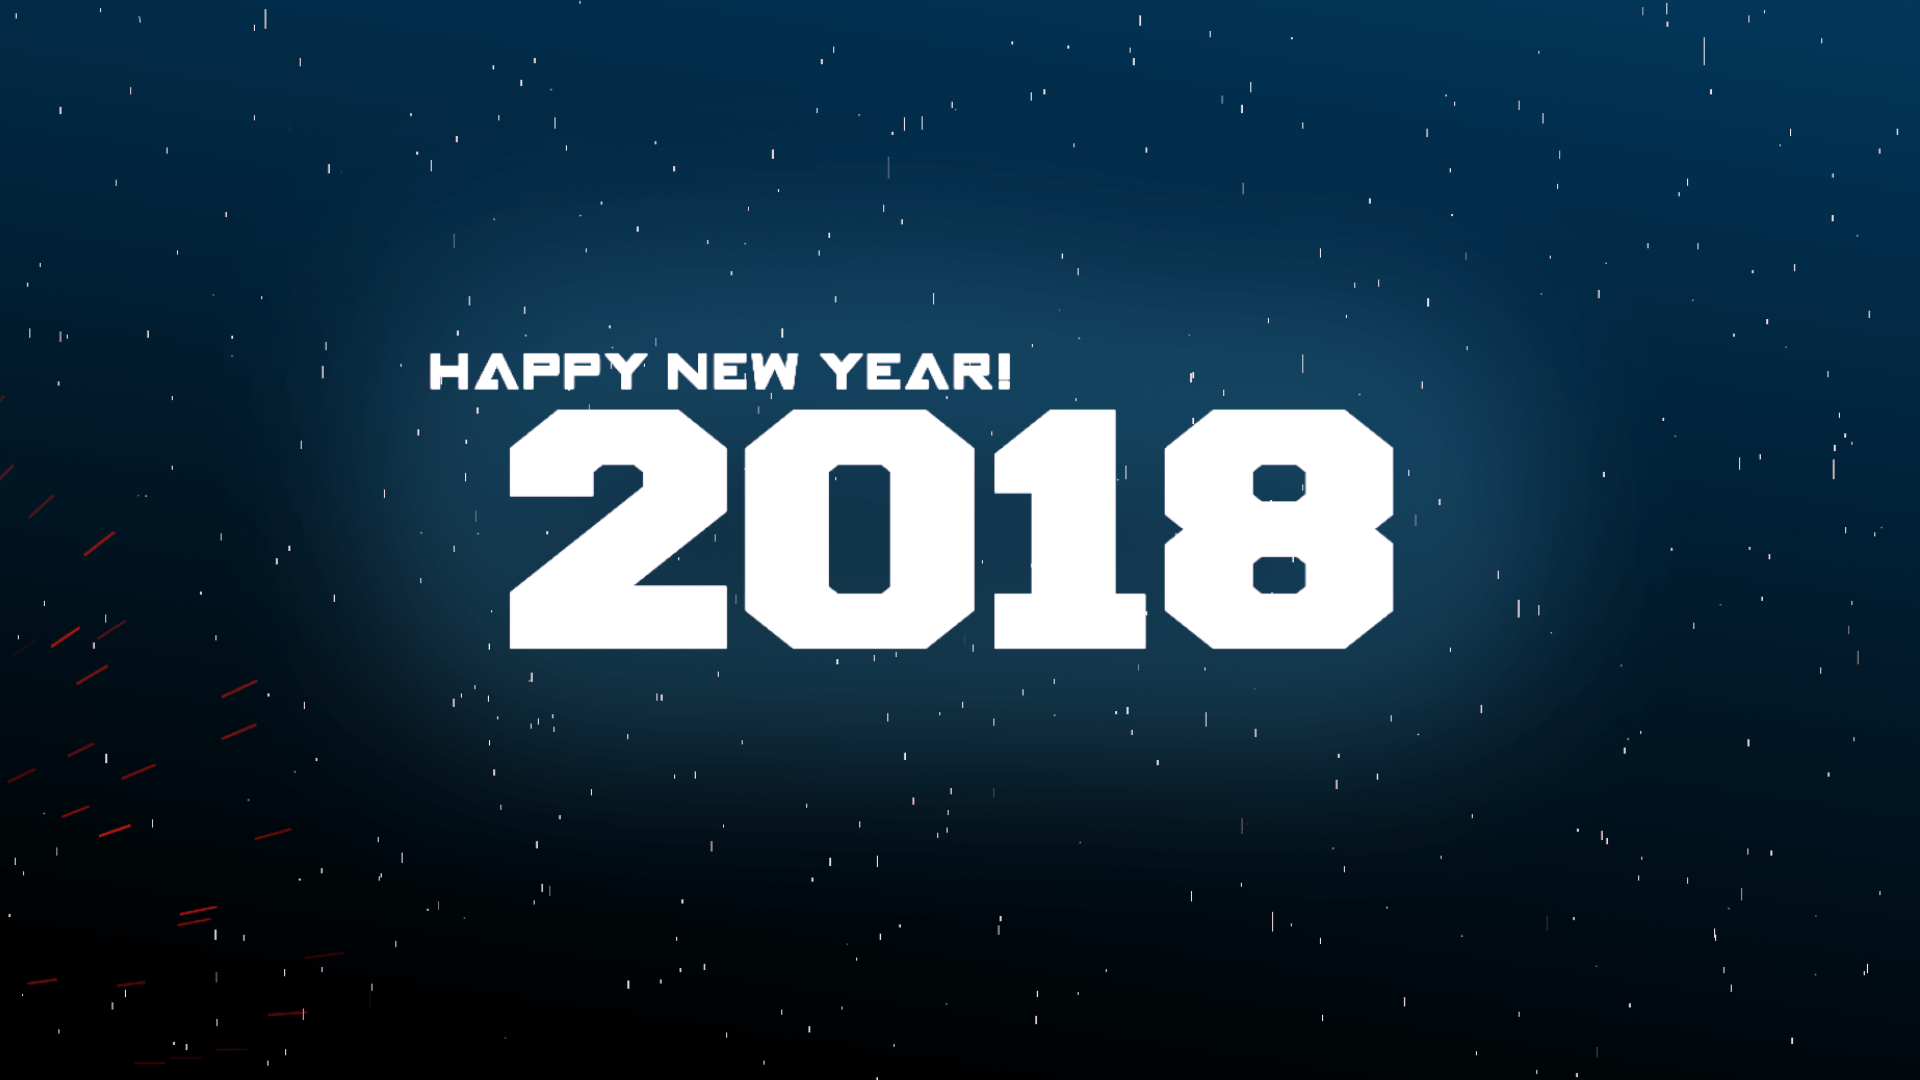 Customize the text for New Years Fireworks to view your free intro movie.